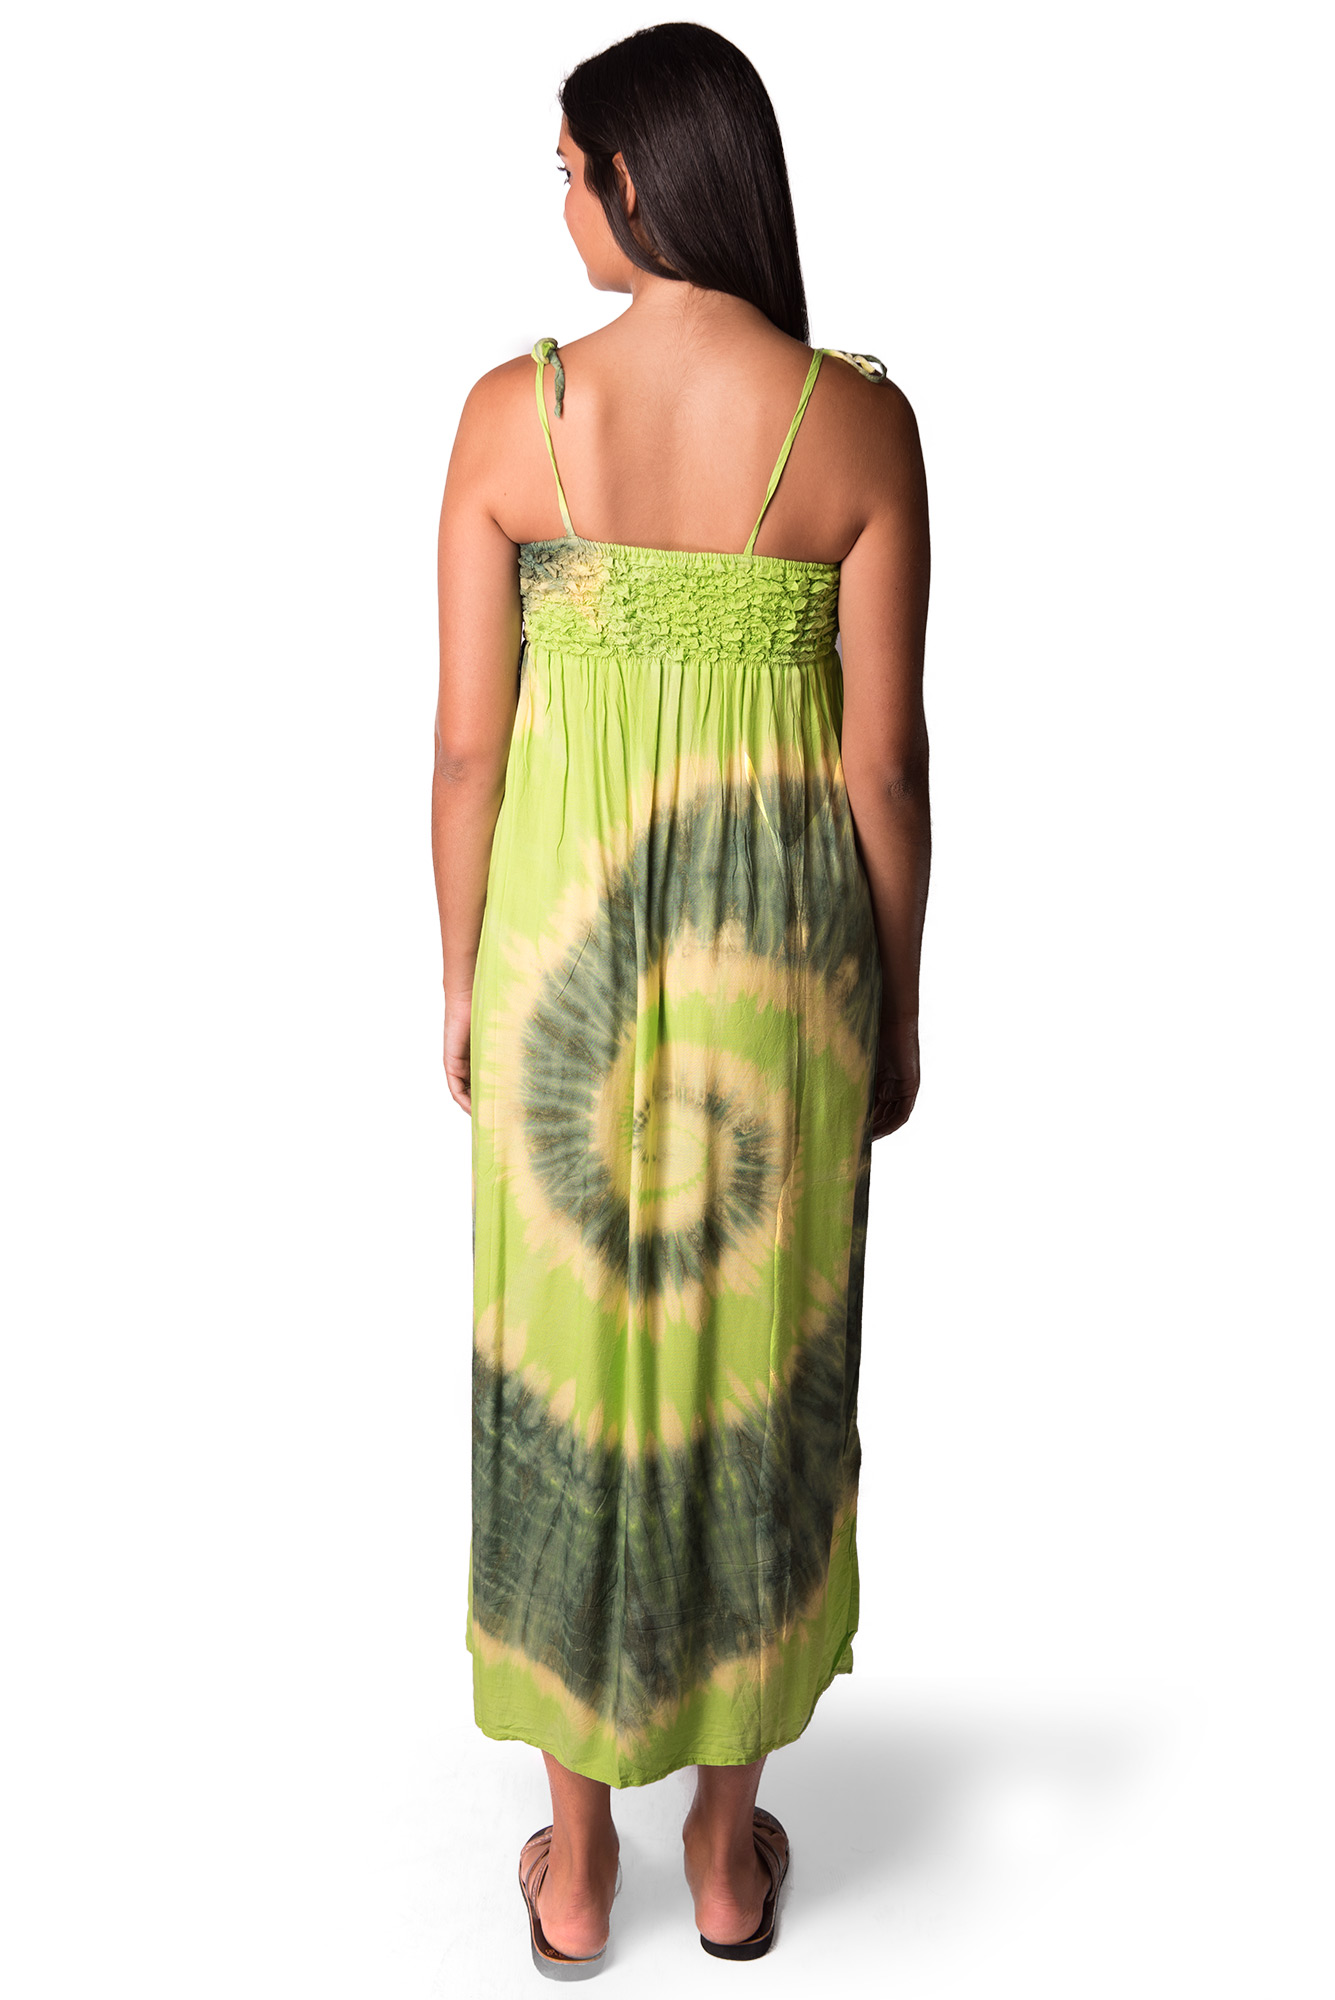 Maxi Dress, Hand Painted Tie Dye, Green